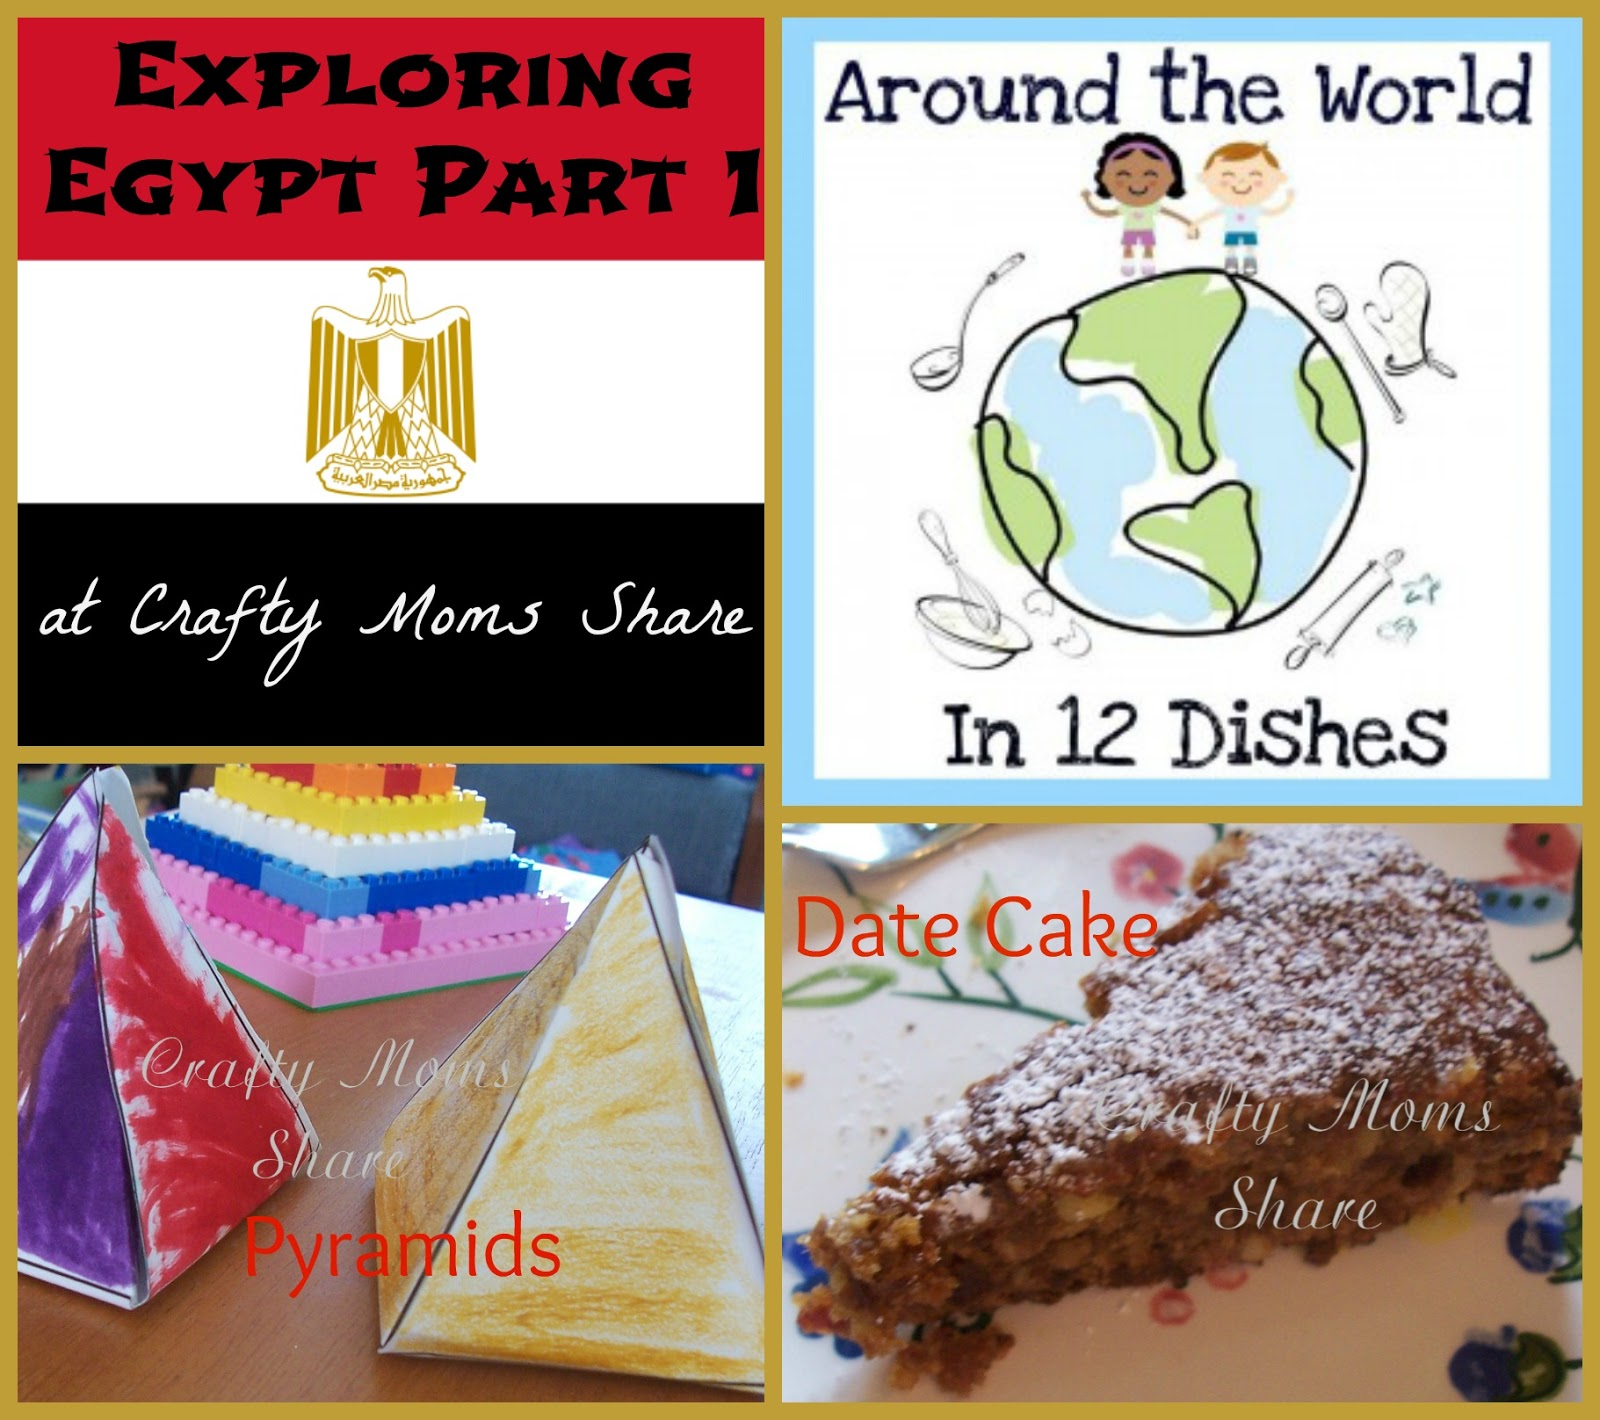 Crafty moms share around the world in 12 dishes egypt part 1 date cake around the world in 12 dishes egypt part 1 date cake forumfinder Gallery